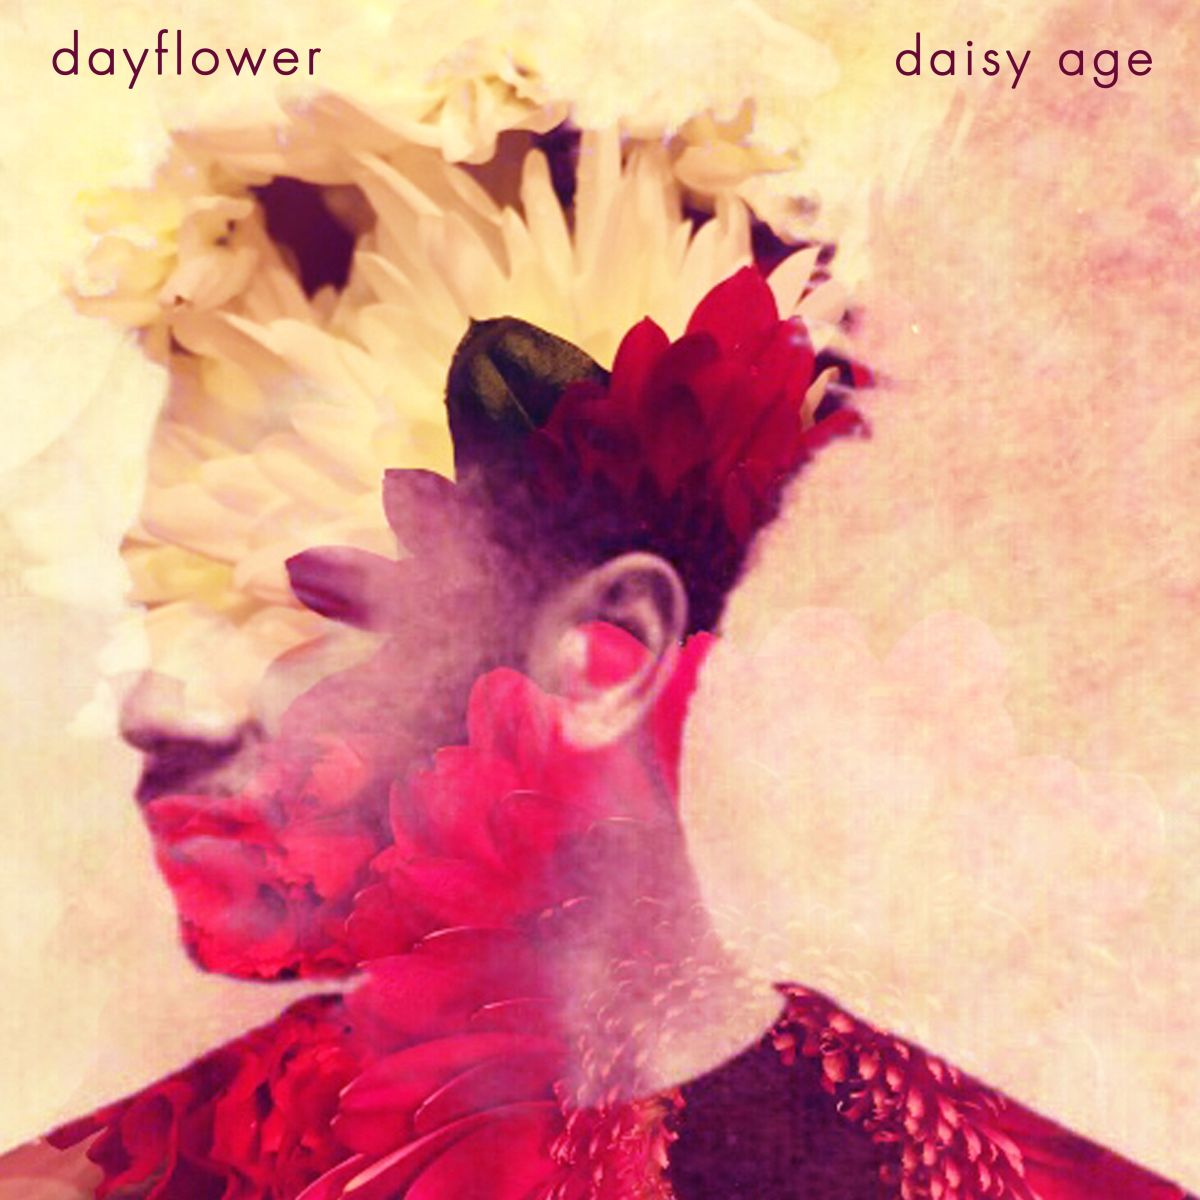 Dayflower - Daisy Age (single and video)